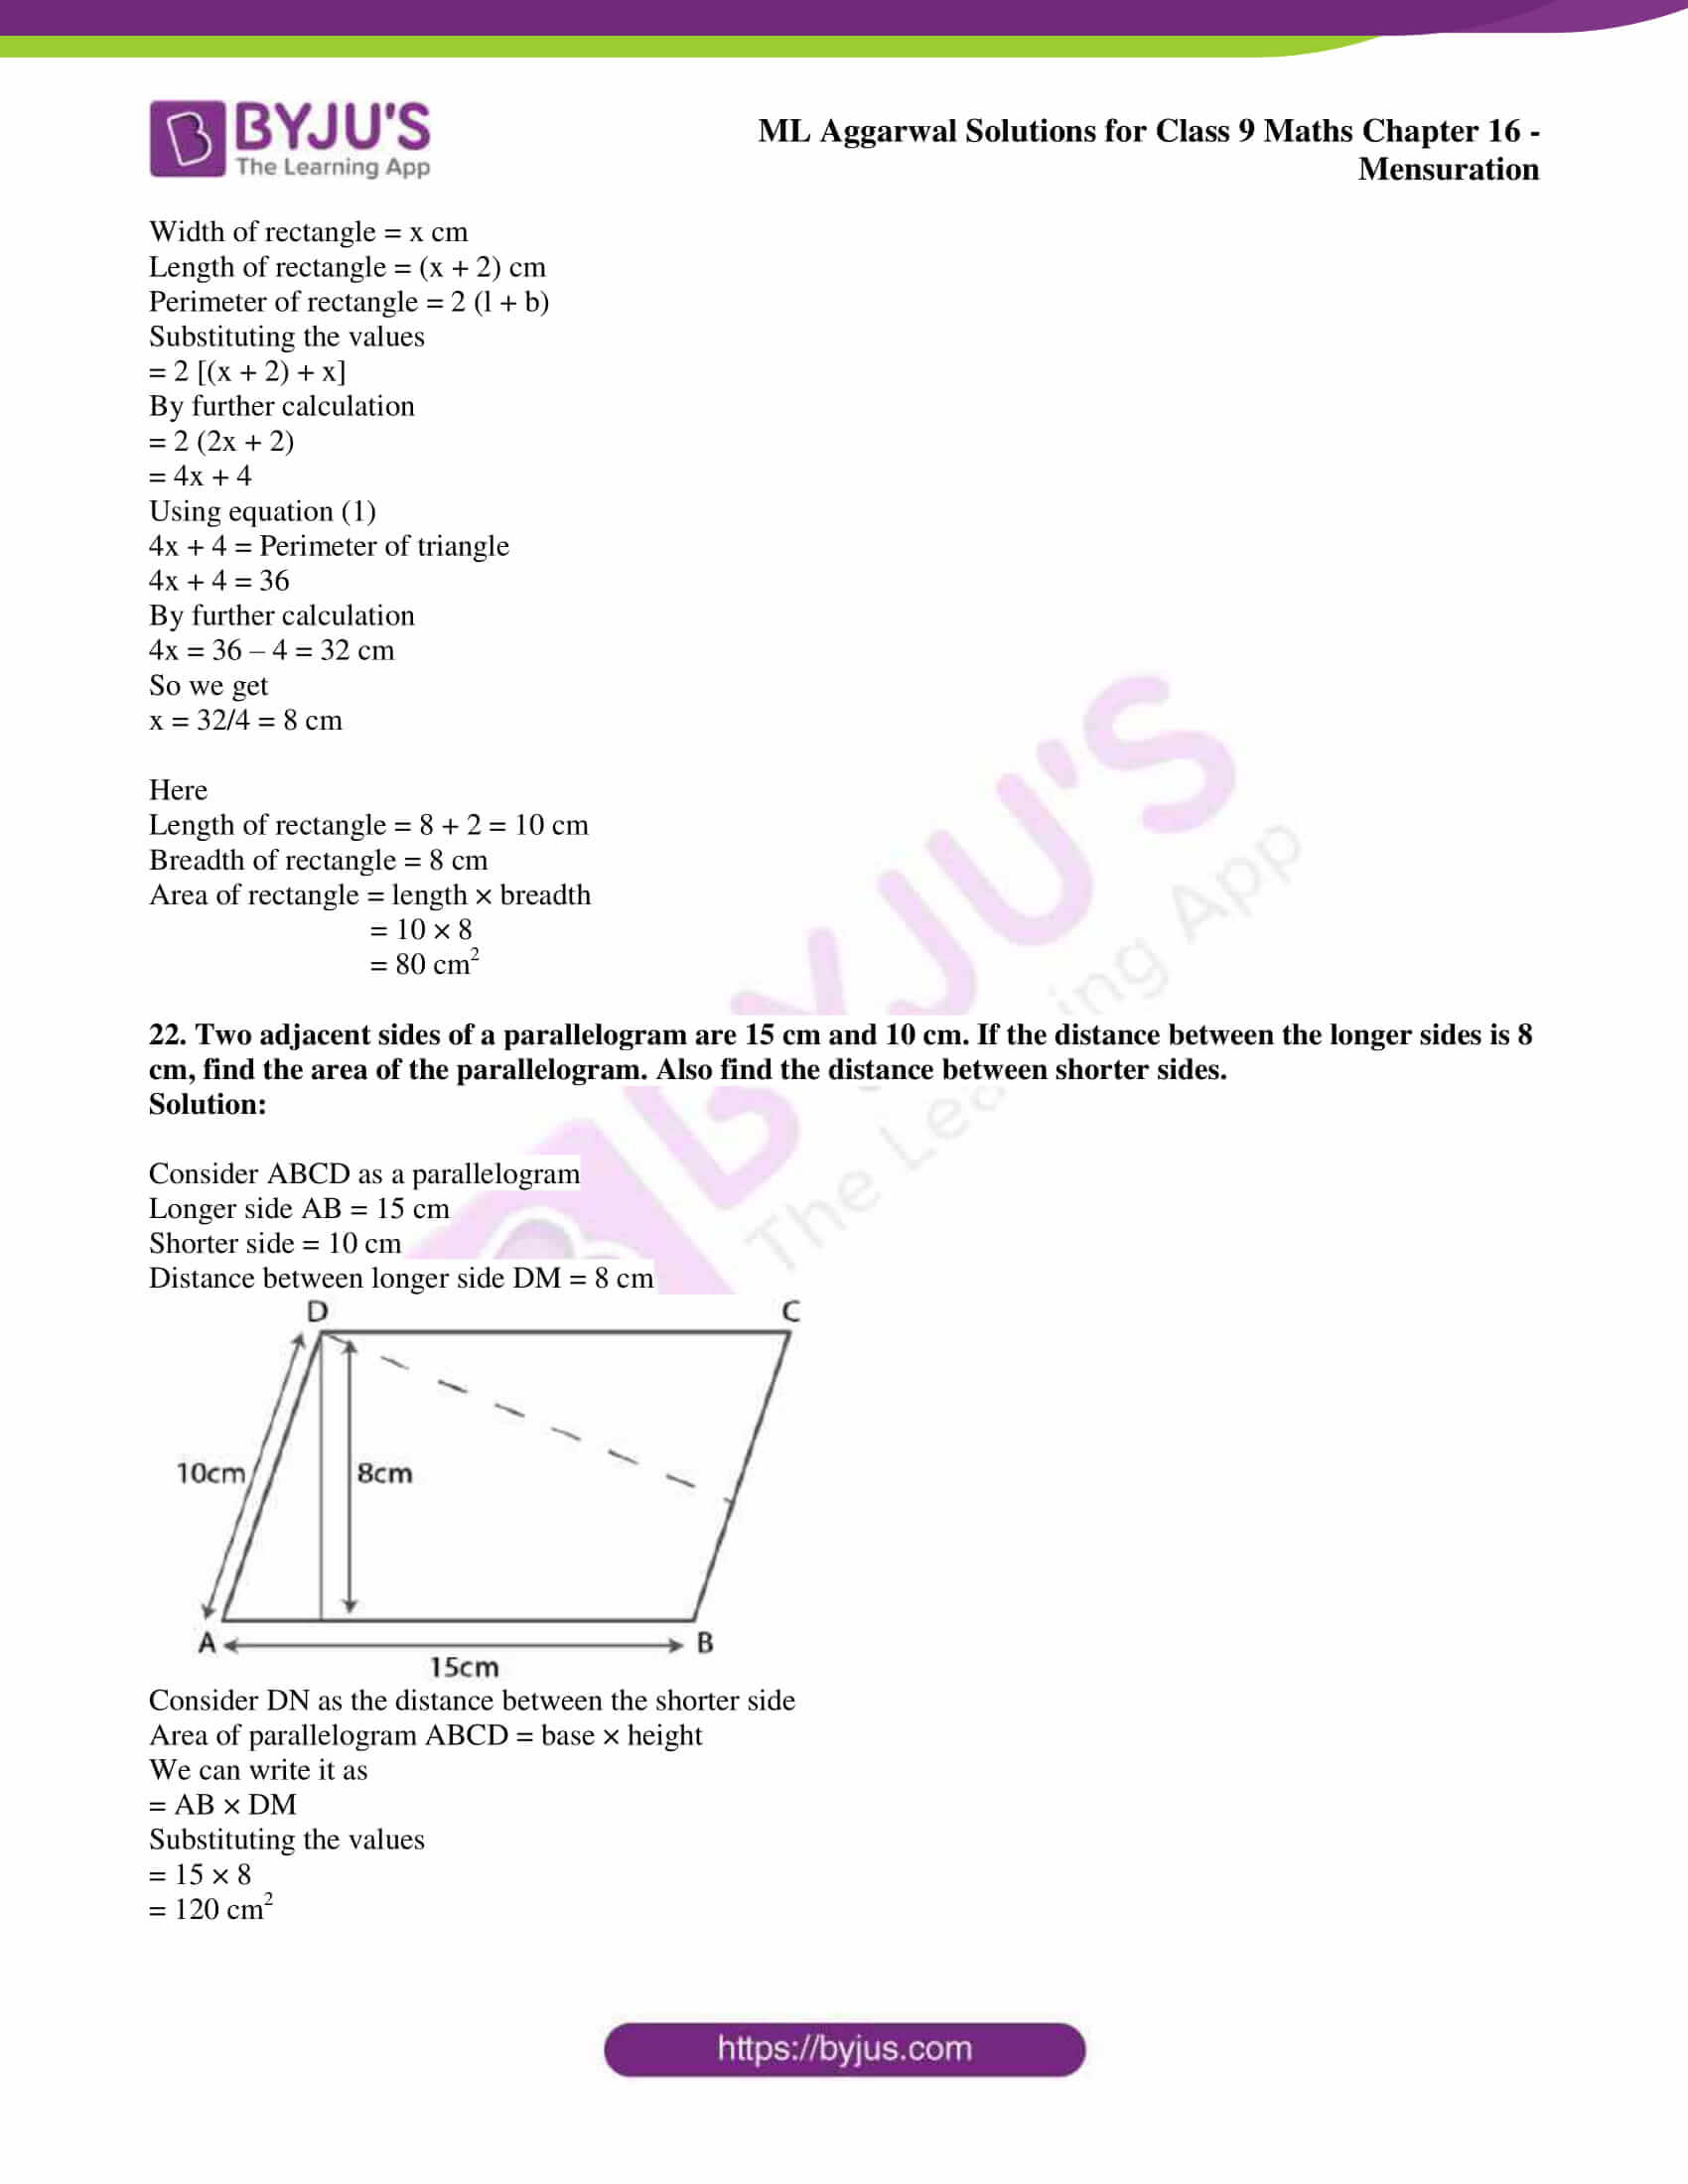 ml aggarwal solutions for class 9 maths chapter 16 045